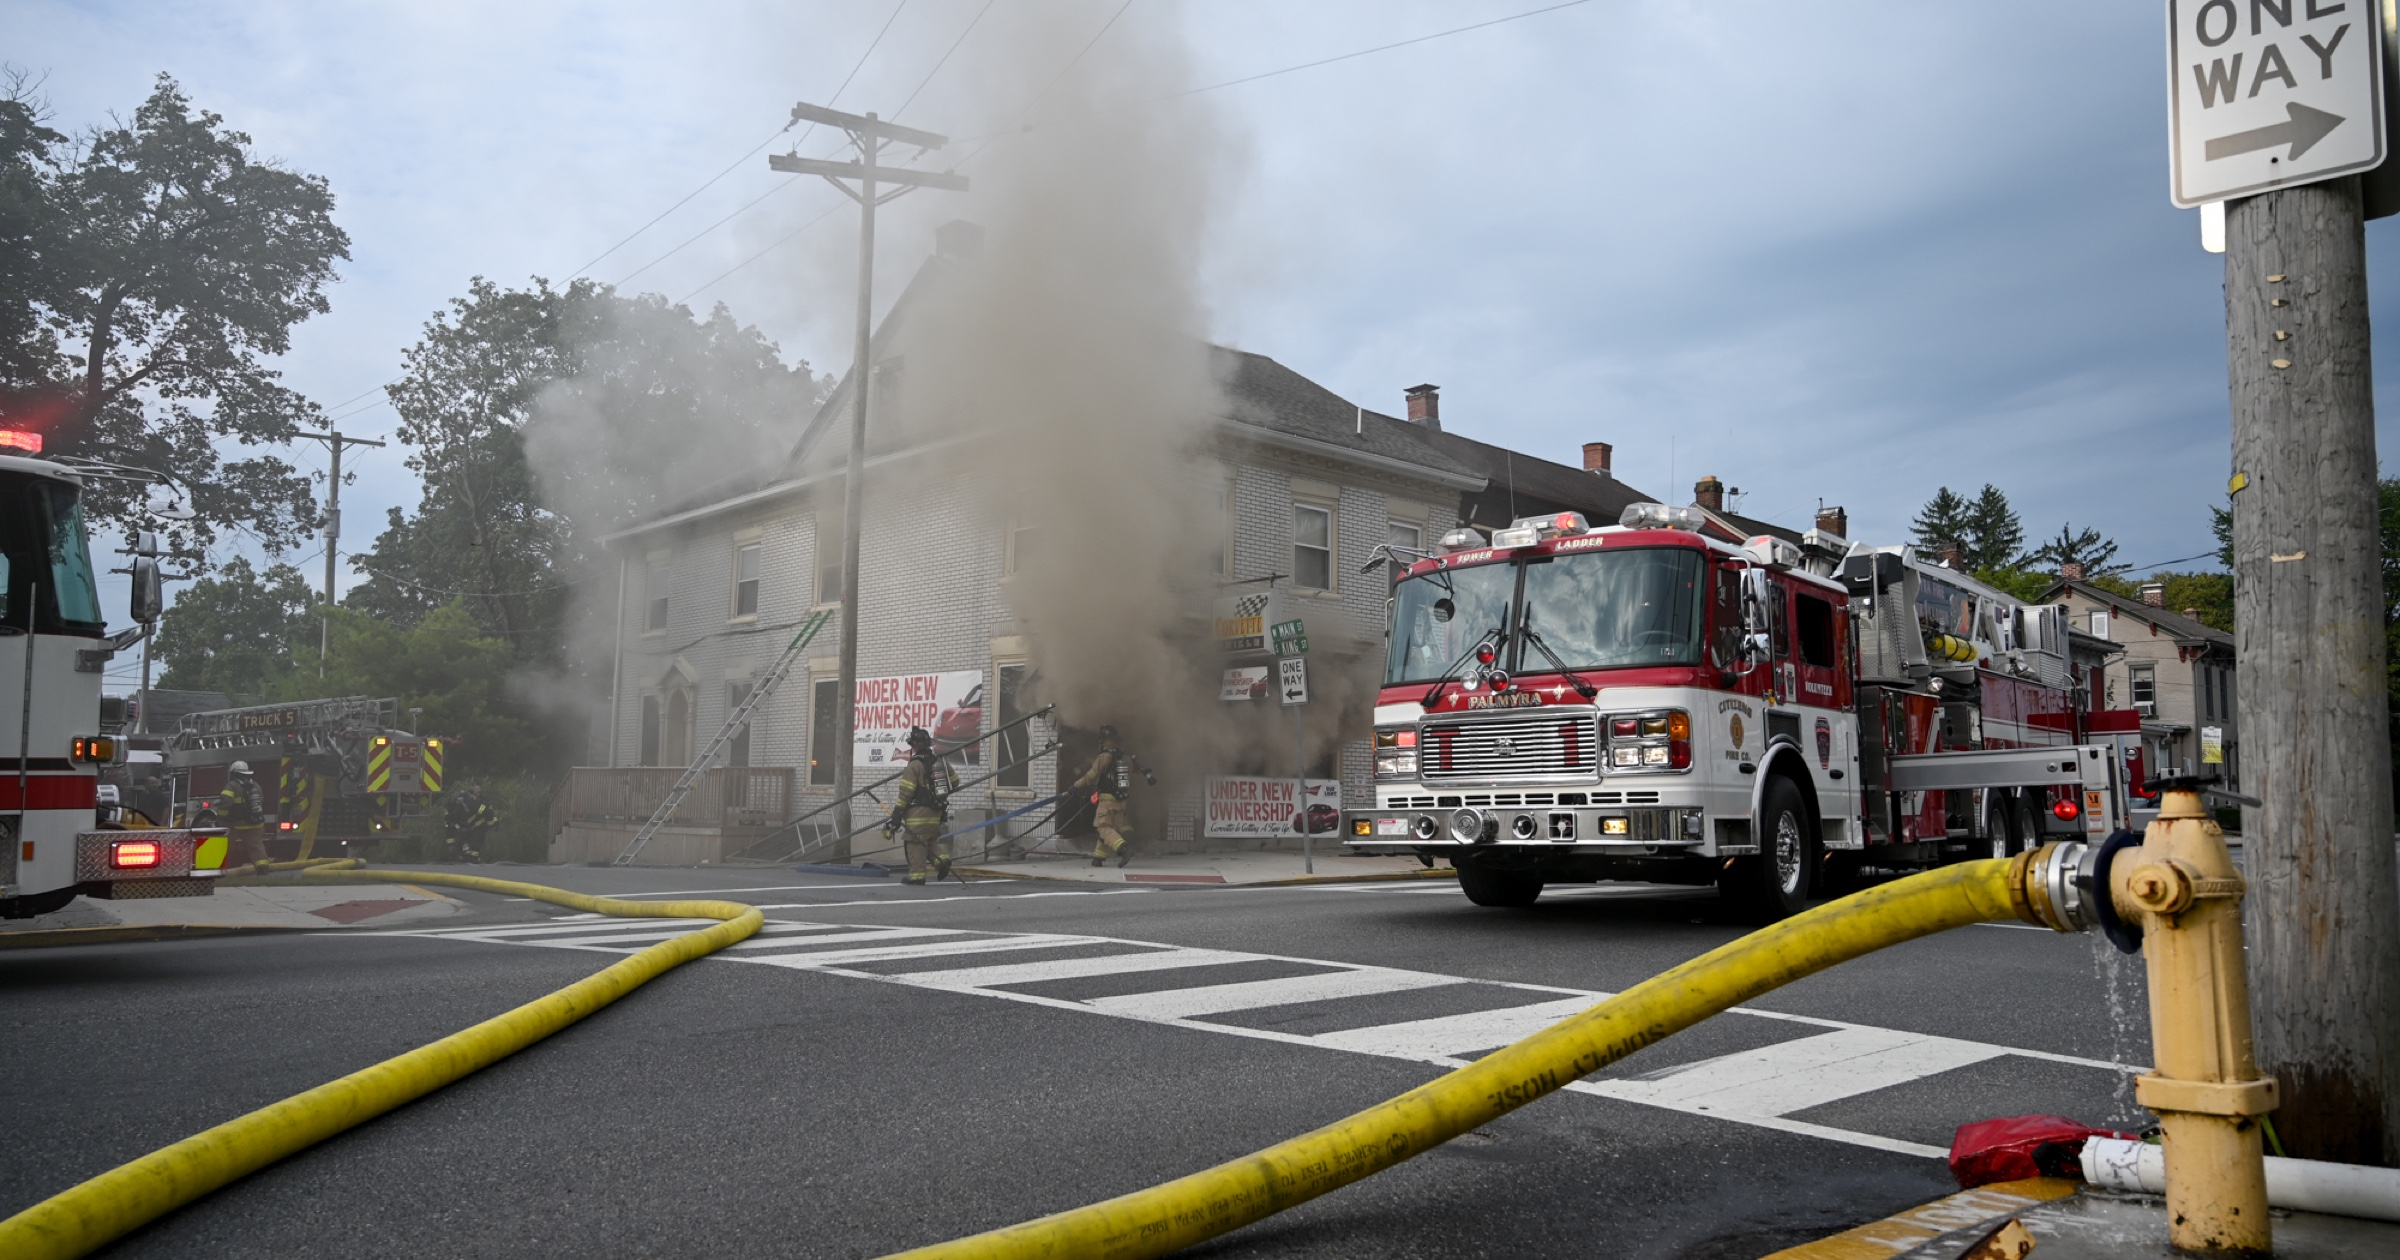 [Photos] Local fire companies turn out to fight Corvette Grille blaze